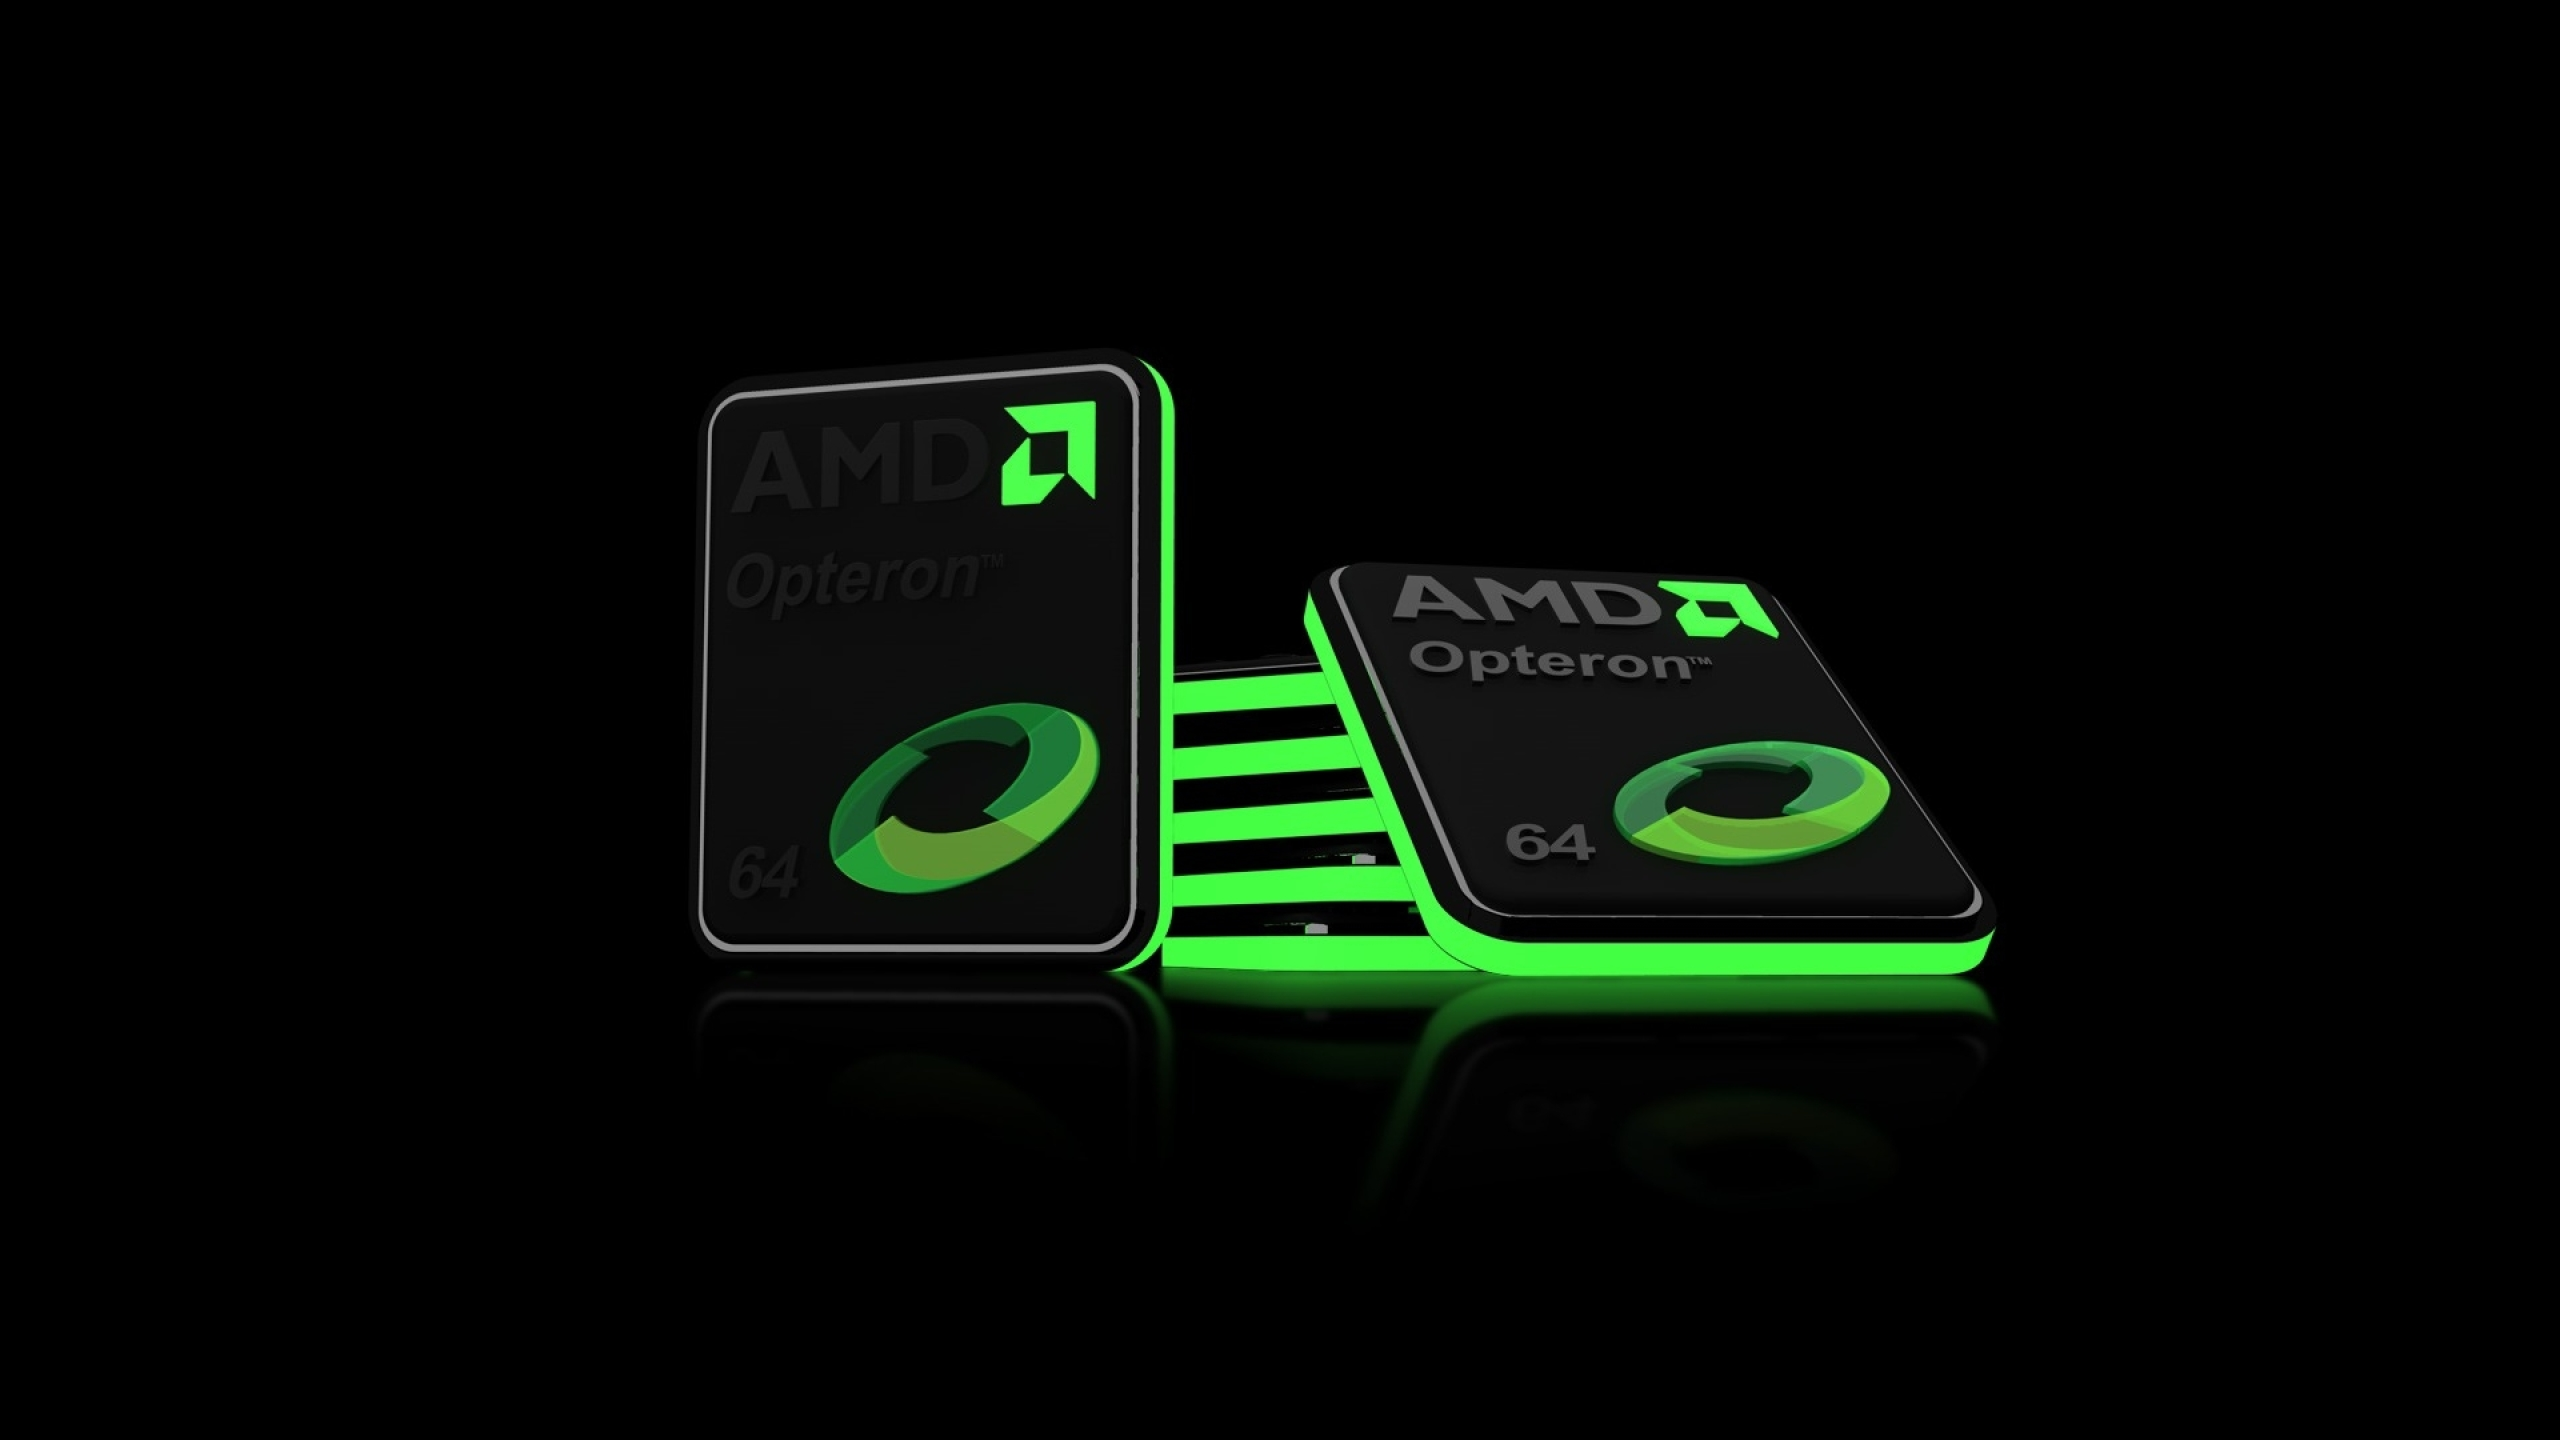 2560x1440 Processor Cpu Amd 1440p Resolution Wallpaper Hd Hi Tech 4k Wallpapers Images Photos And Background